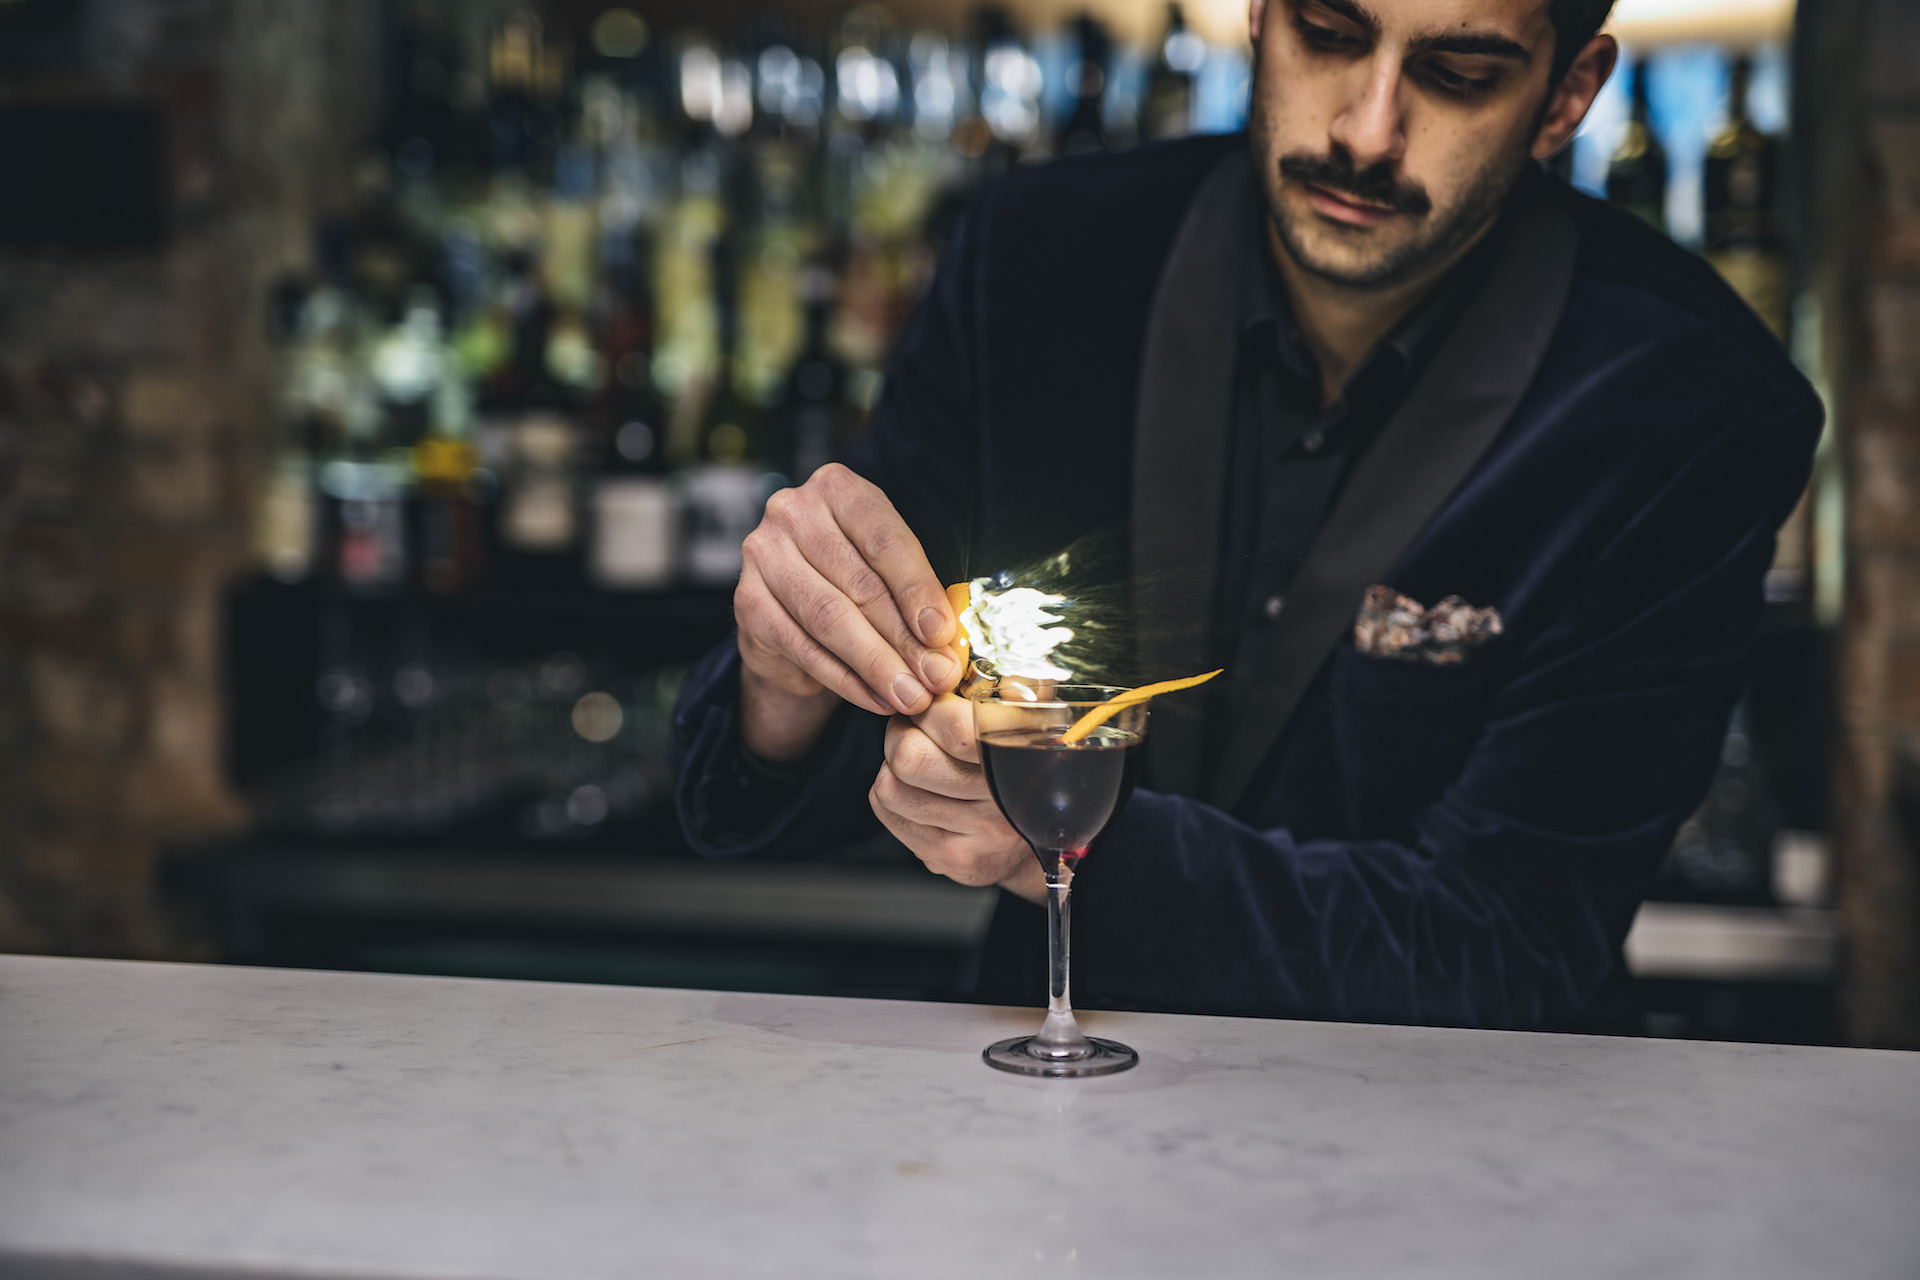 Evan Prousaefs - Evan Prousaefs is the Bar Manager of Meraki bar & restaurant, with experience in high-end venues in London and Mykonos. He was running the Bar & Beverage department of Nammos group and has strong background in openings, including the first Ling Lin Hakkasan.